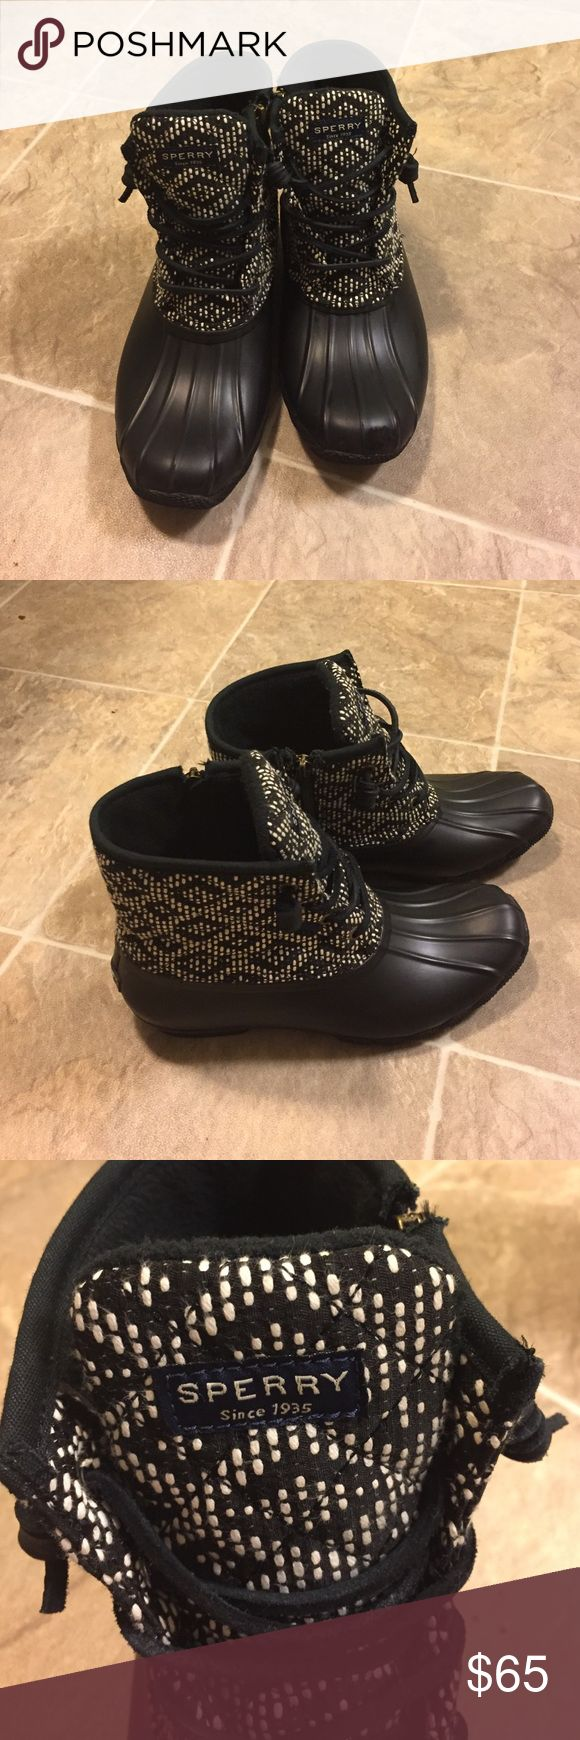 Sperry Top-Sider Boot size 8.5 Great condition! Worn twice and my left foot arch is too big for these. Super cute pattern! Sperry Top-Sider Shoes Winter & Rain Boots